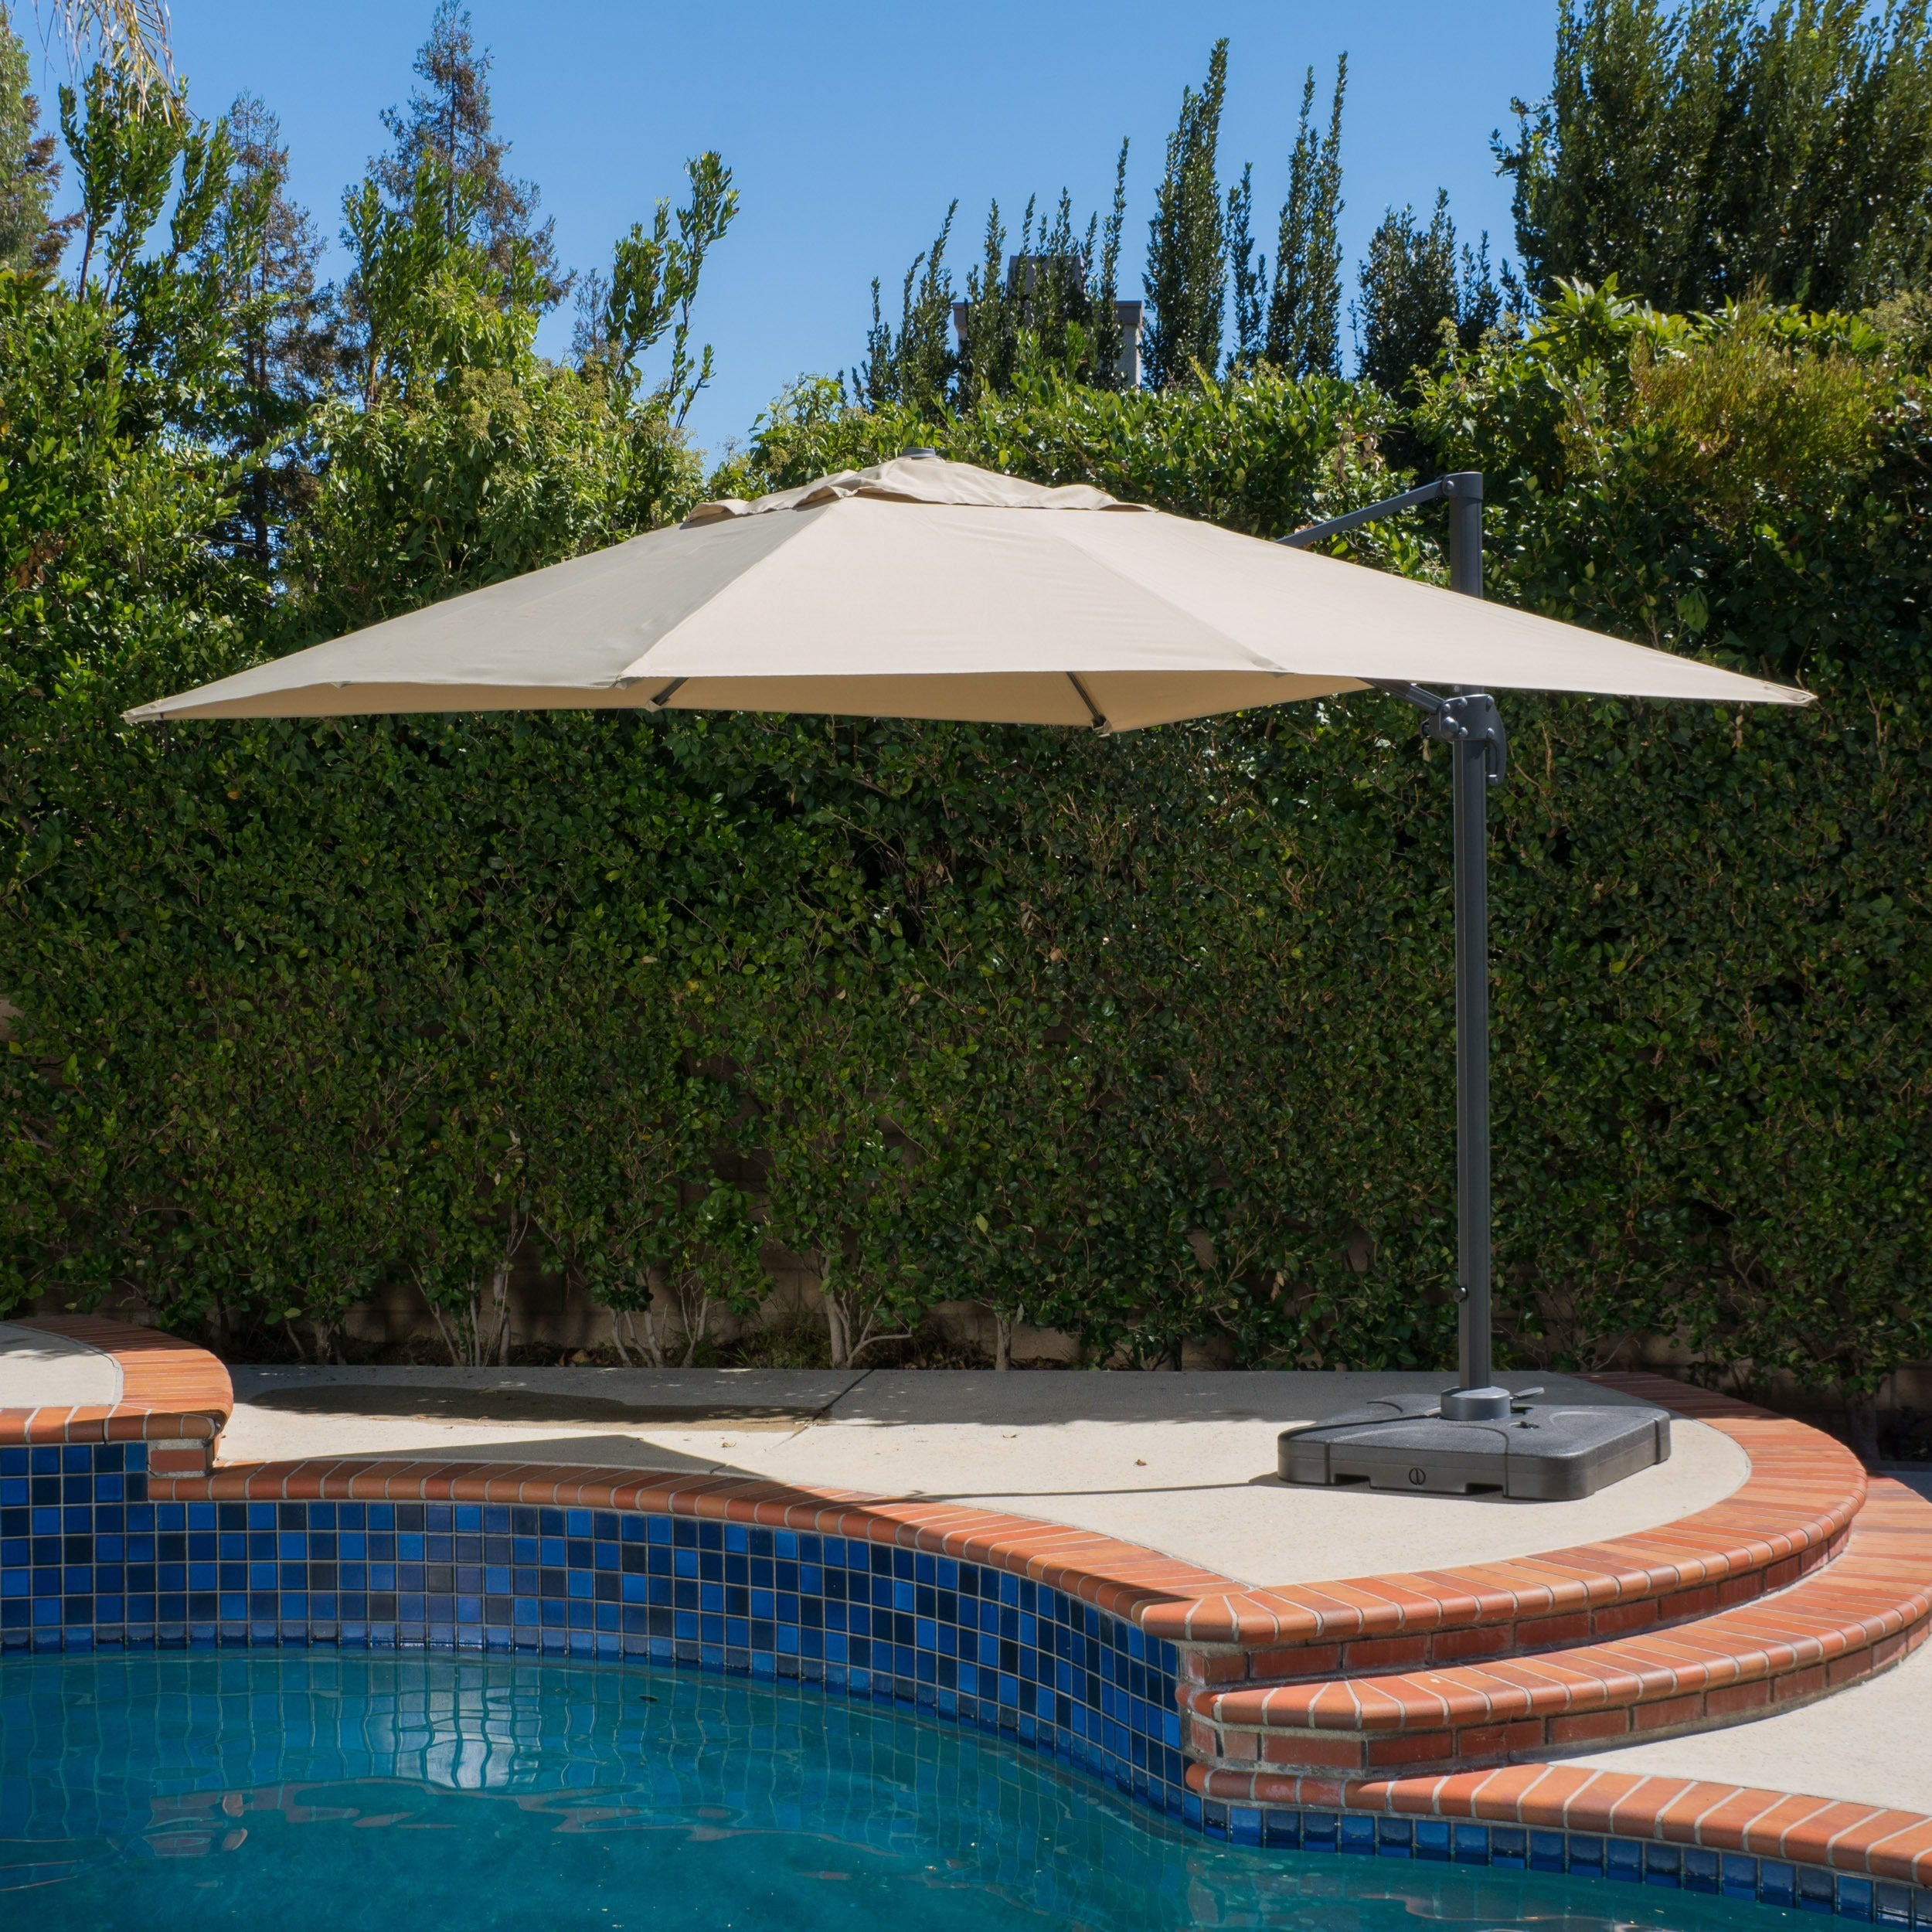 Outdoor Geneva 9u00278-foot Canopy Umbrella with Stand by Christopher Knight Home - Free Shipping Today - Overstock.com - 15035098 & Outdoor Geneva 9u00278-foot Canopy Umbrella with Stand by Christopher ...